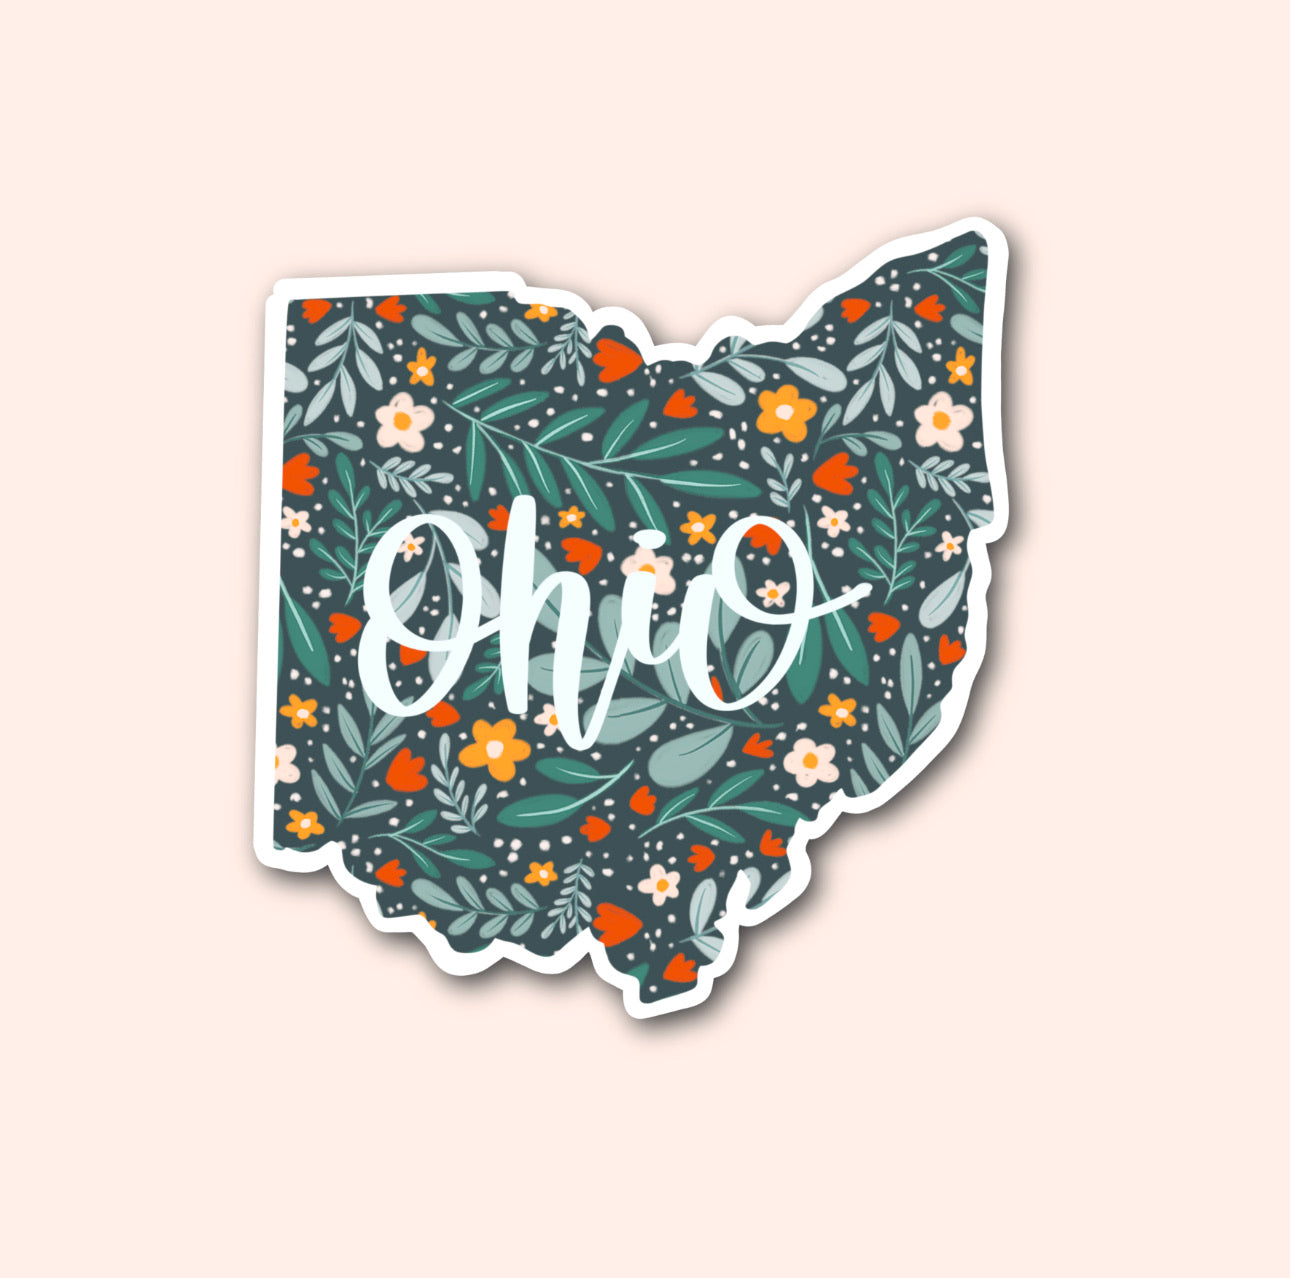 Ohio Floral Pattern Sticker